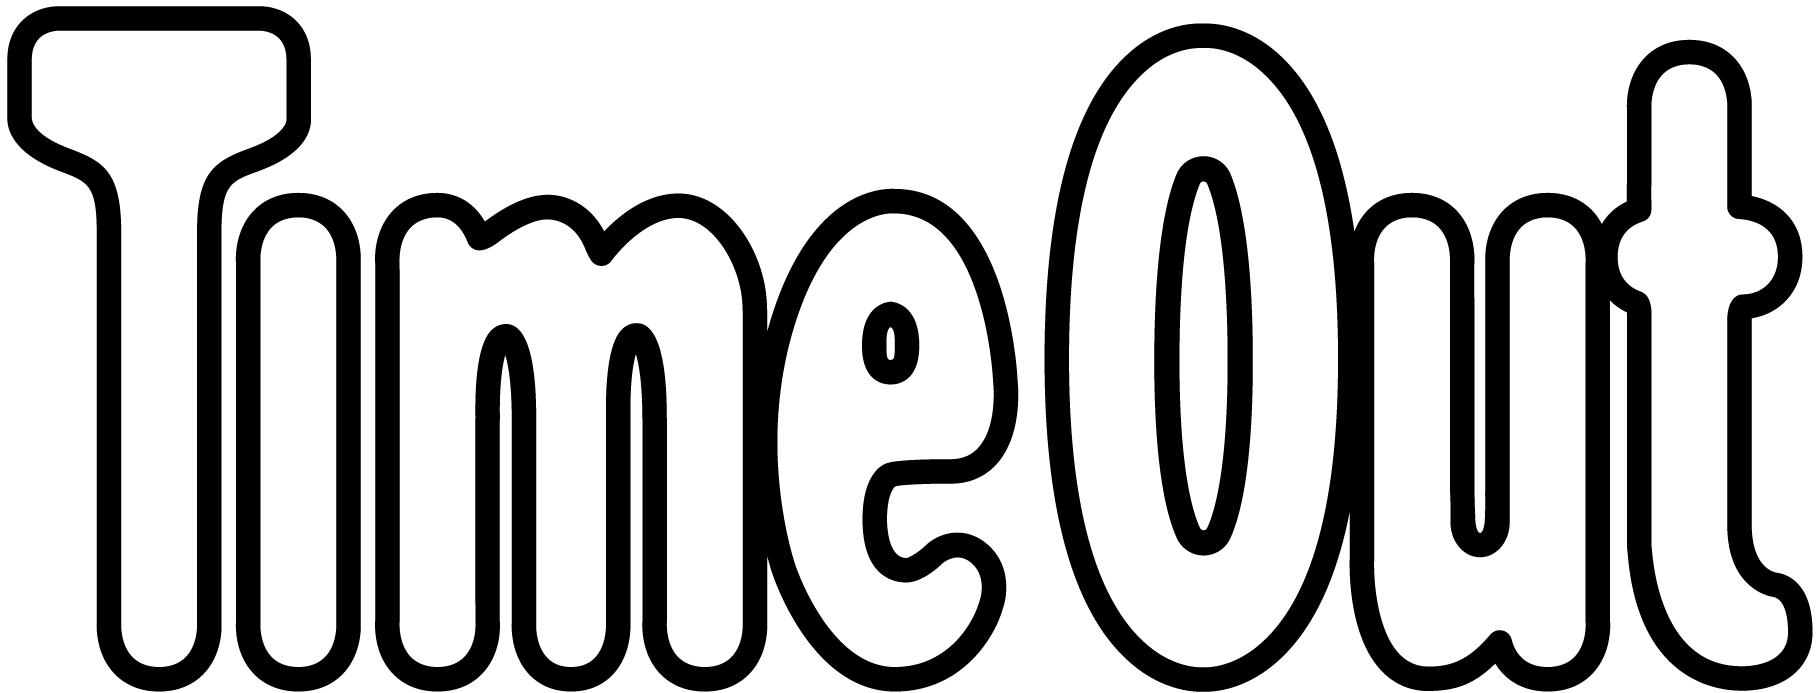 time-out-logo-png-1.png